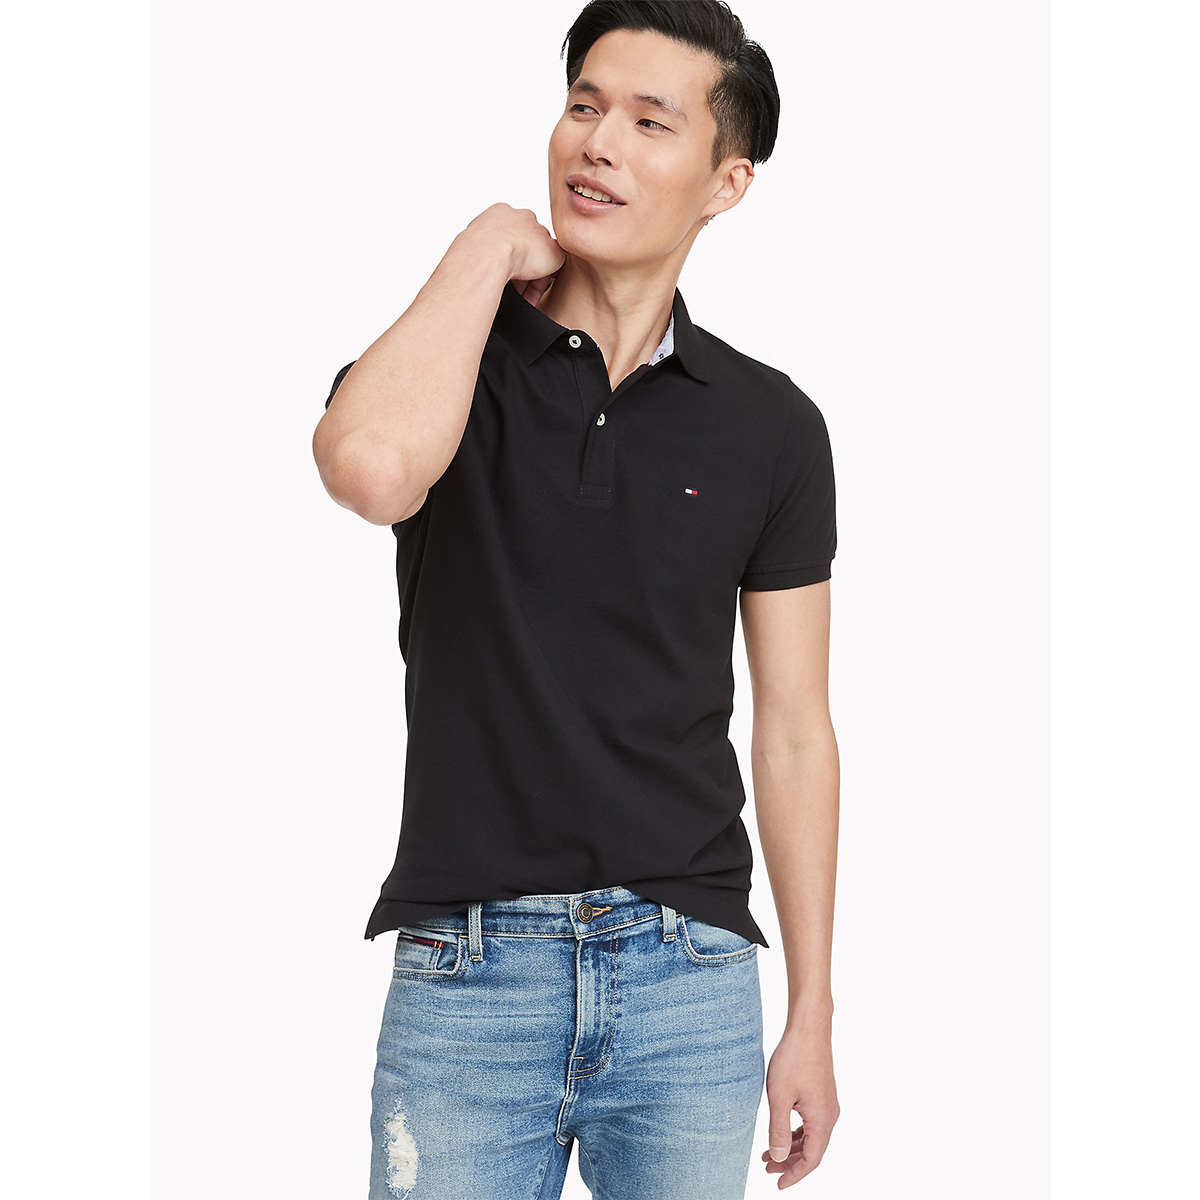 ao-polo-tommy-hilfiger-slim-fit-45